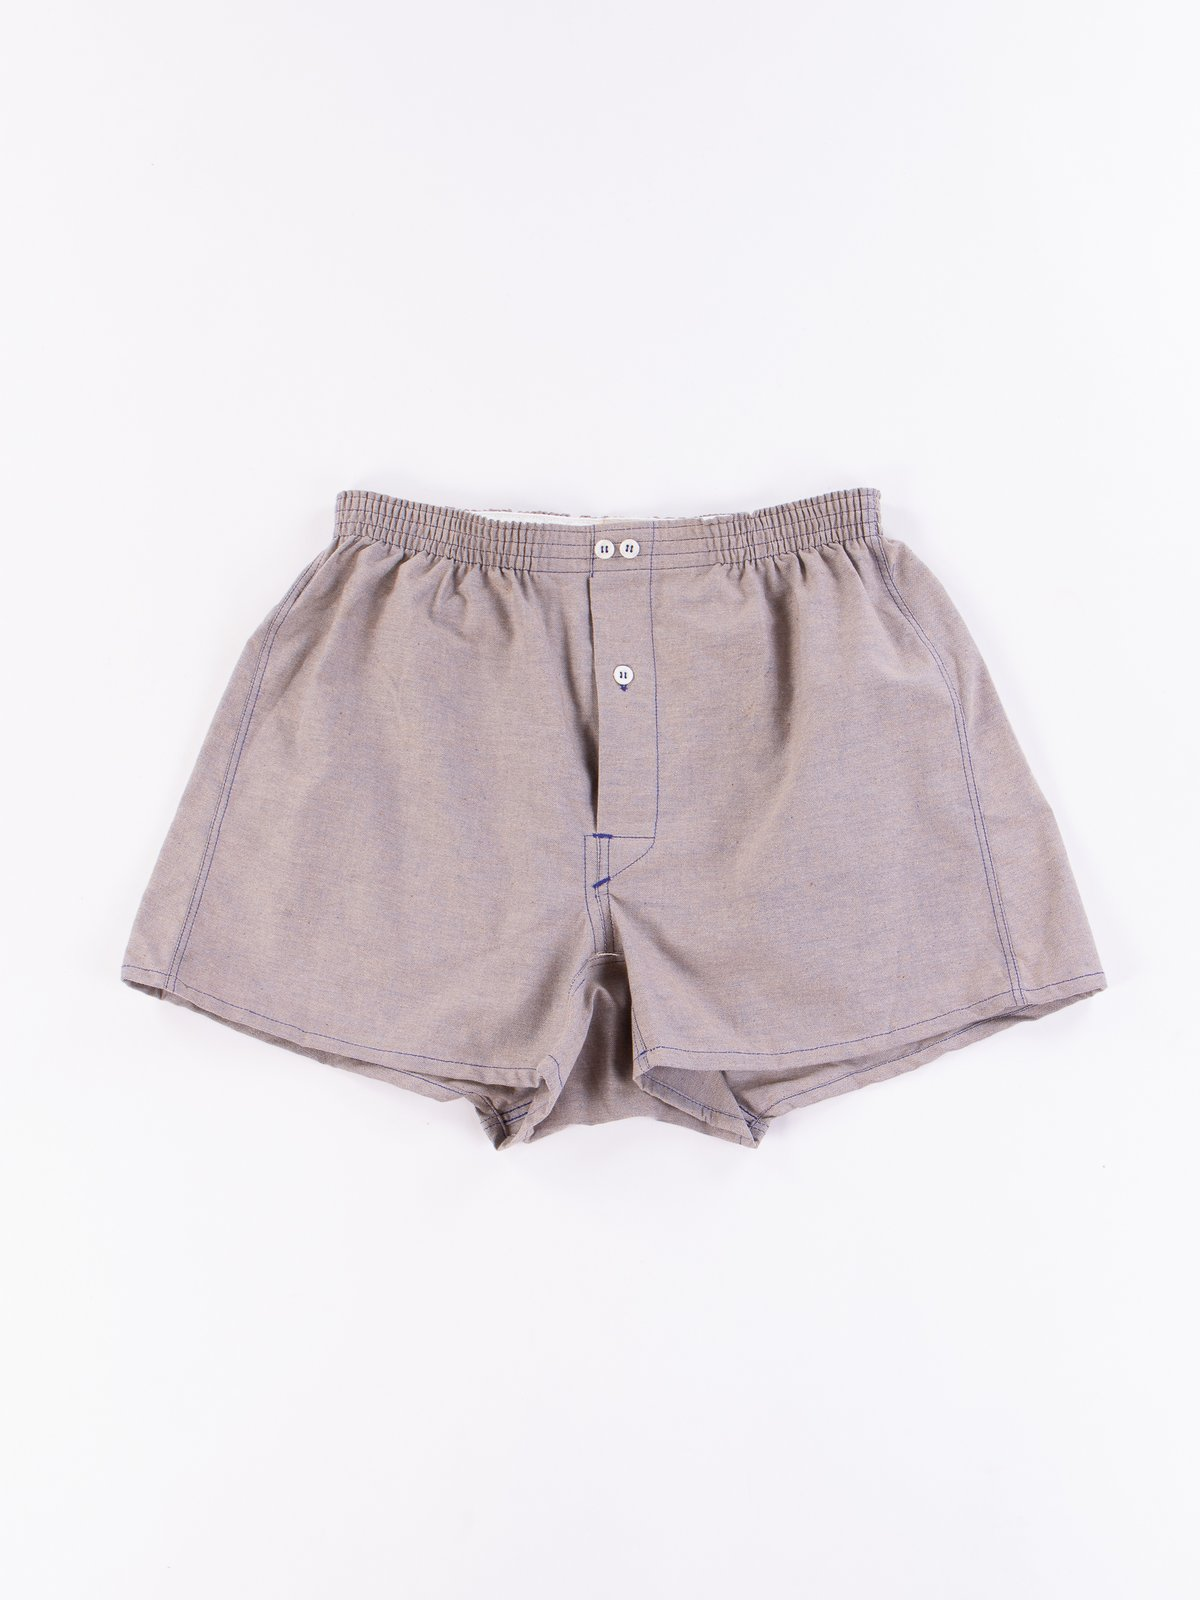 Purple Oxford Vintage Boxer Short - Image 2